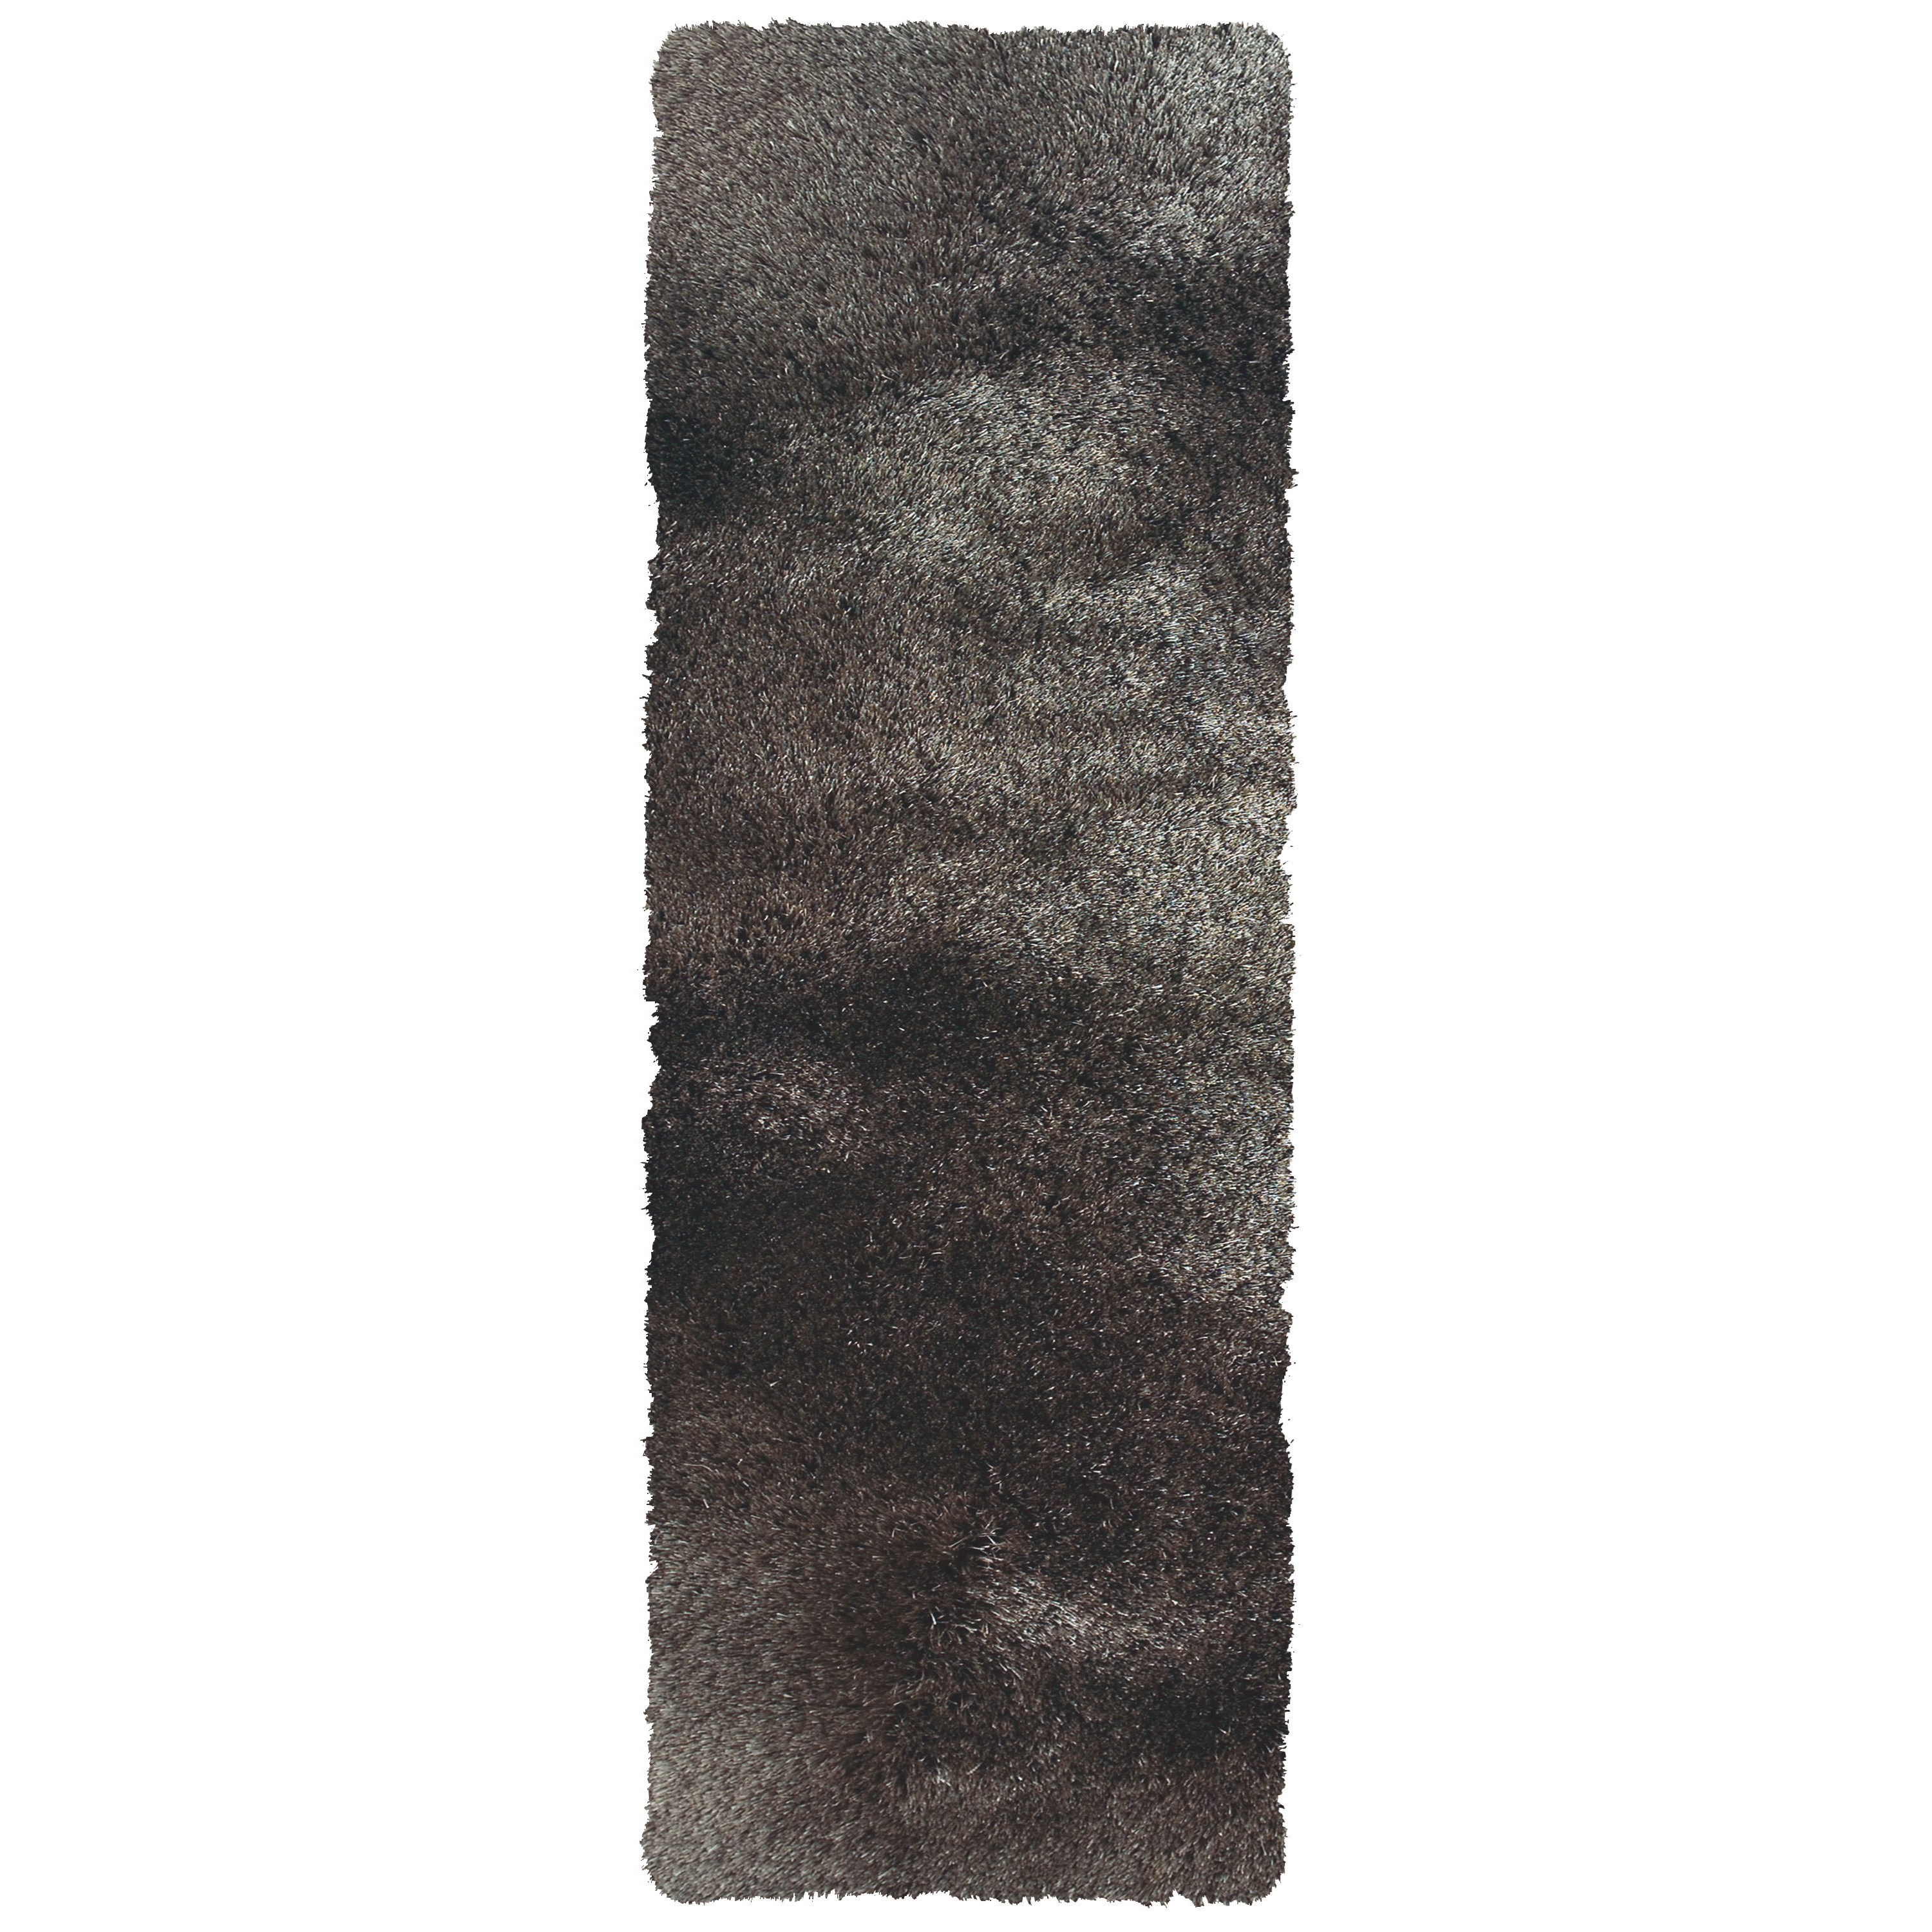 """Indochine Gray 2'-6"""" X 6' Runner Rug by Feizy Rugs at Sprintz Furniture"""